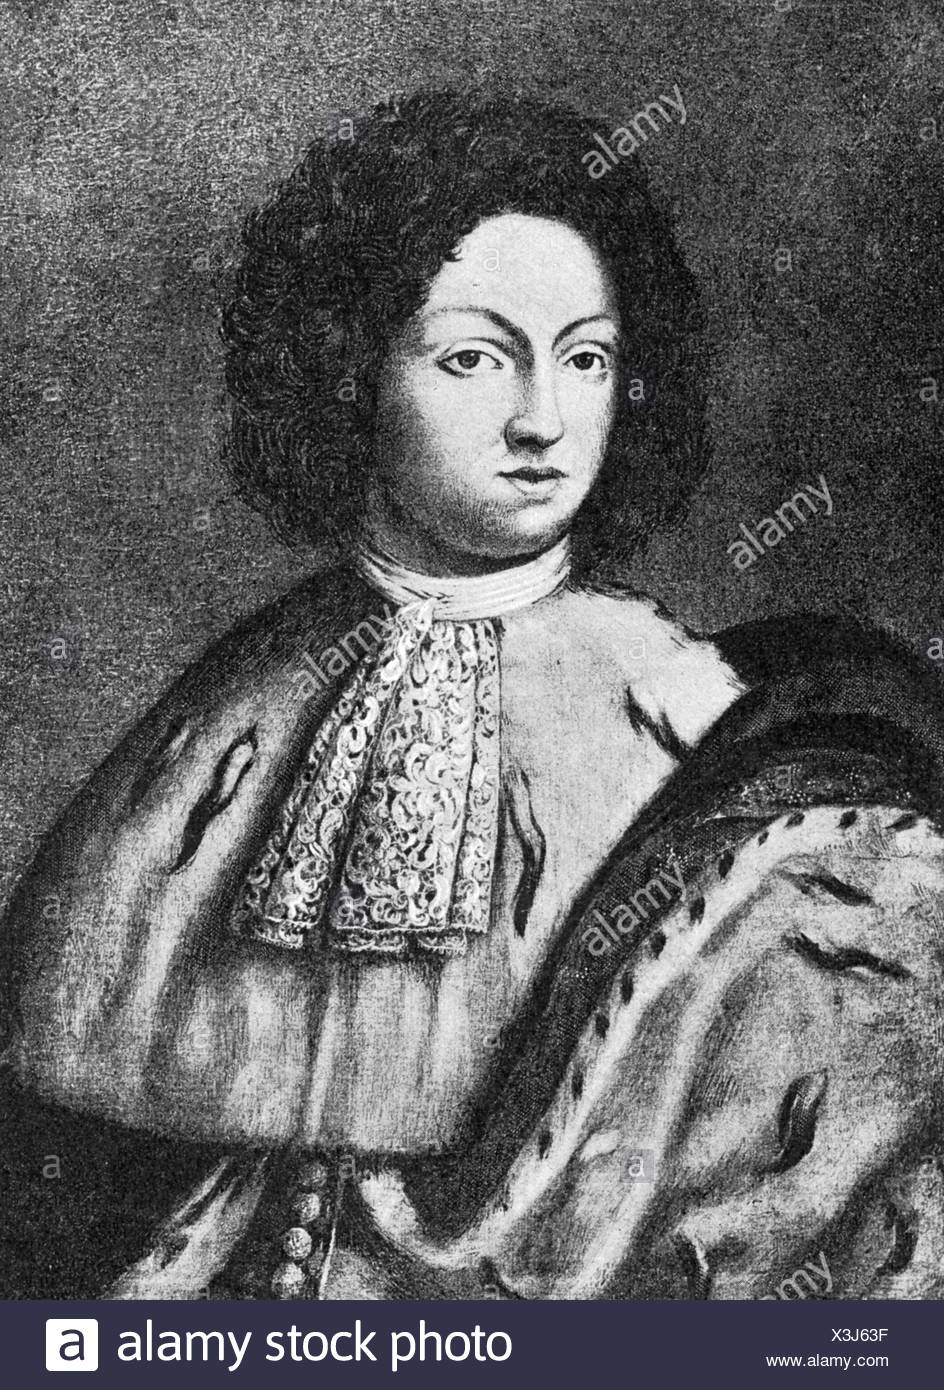 Charles XI, 24.11.1655 - 15.4.1697, King of Sweden 23.2.1660 - 15.4.1697, half length, mezzotint, 19th century, , Additional-Rights-Clearances-NA Stock Photo